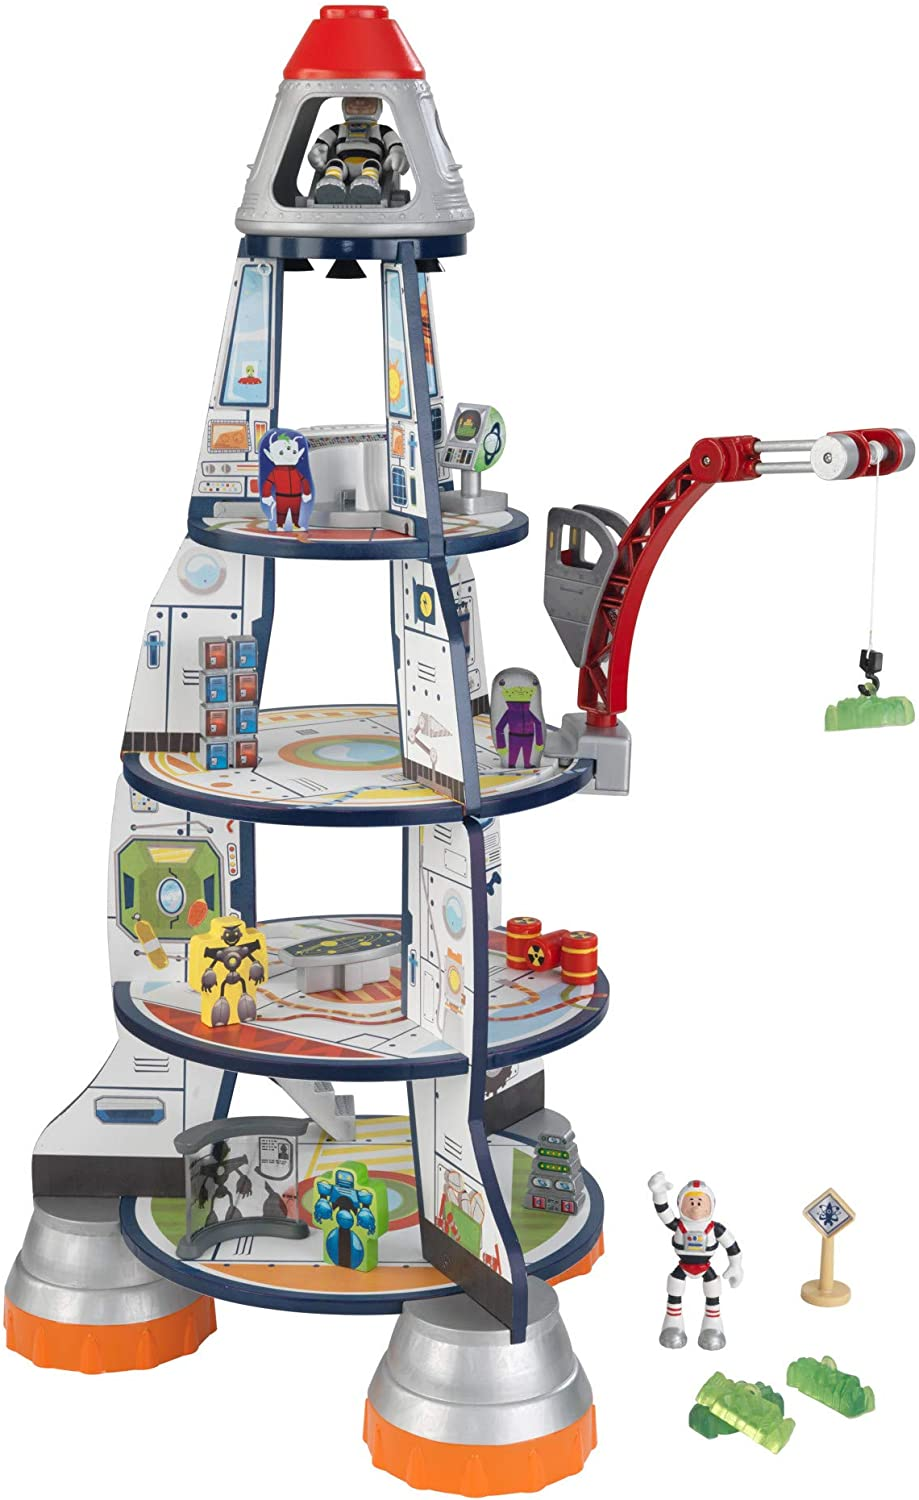 KidKraft Selling and selling Wooden 3-Section Rocket Ship Crane online shop with Set Moving Play